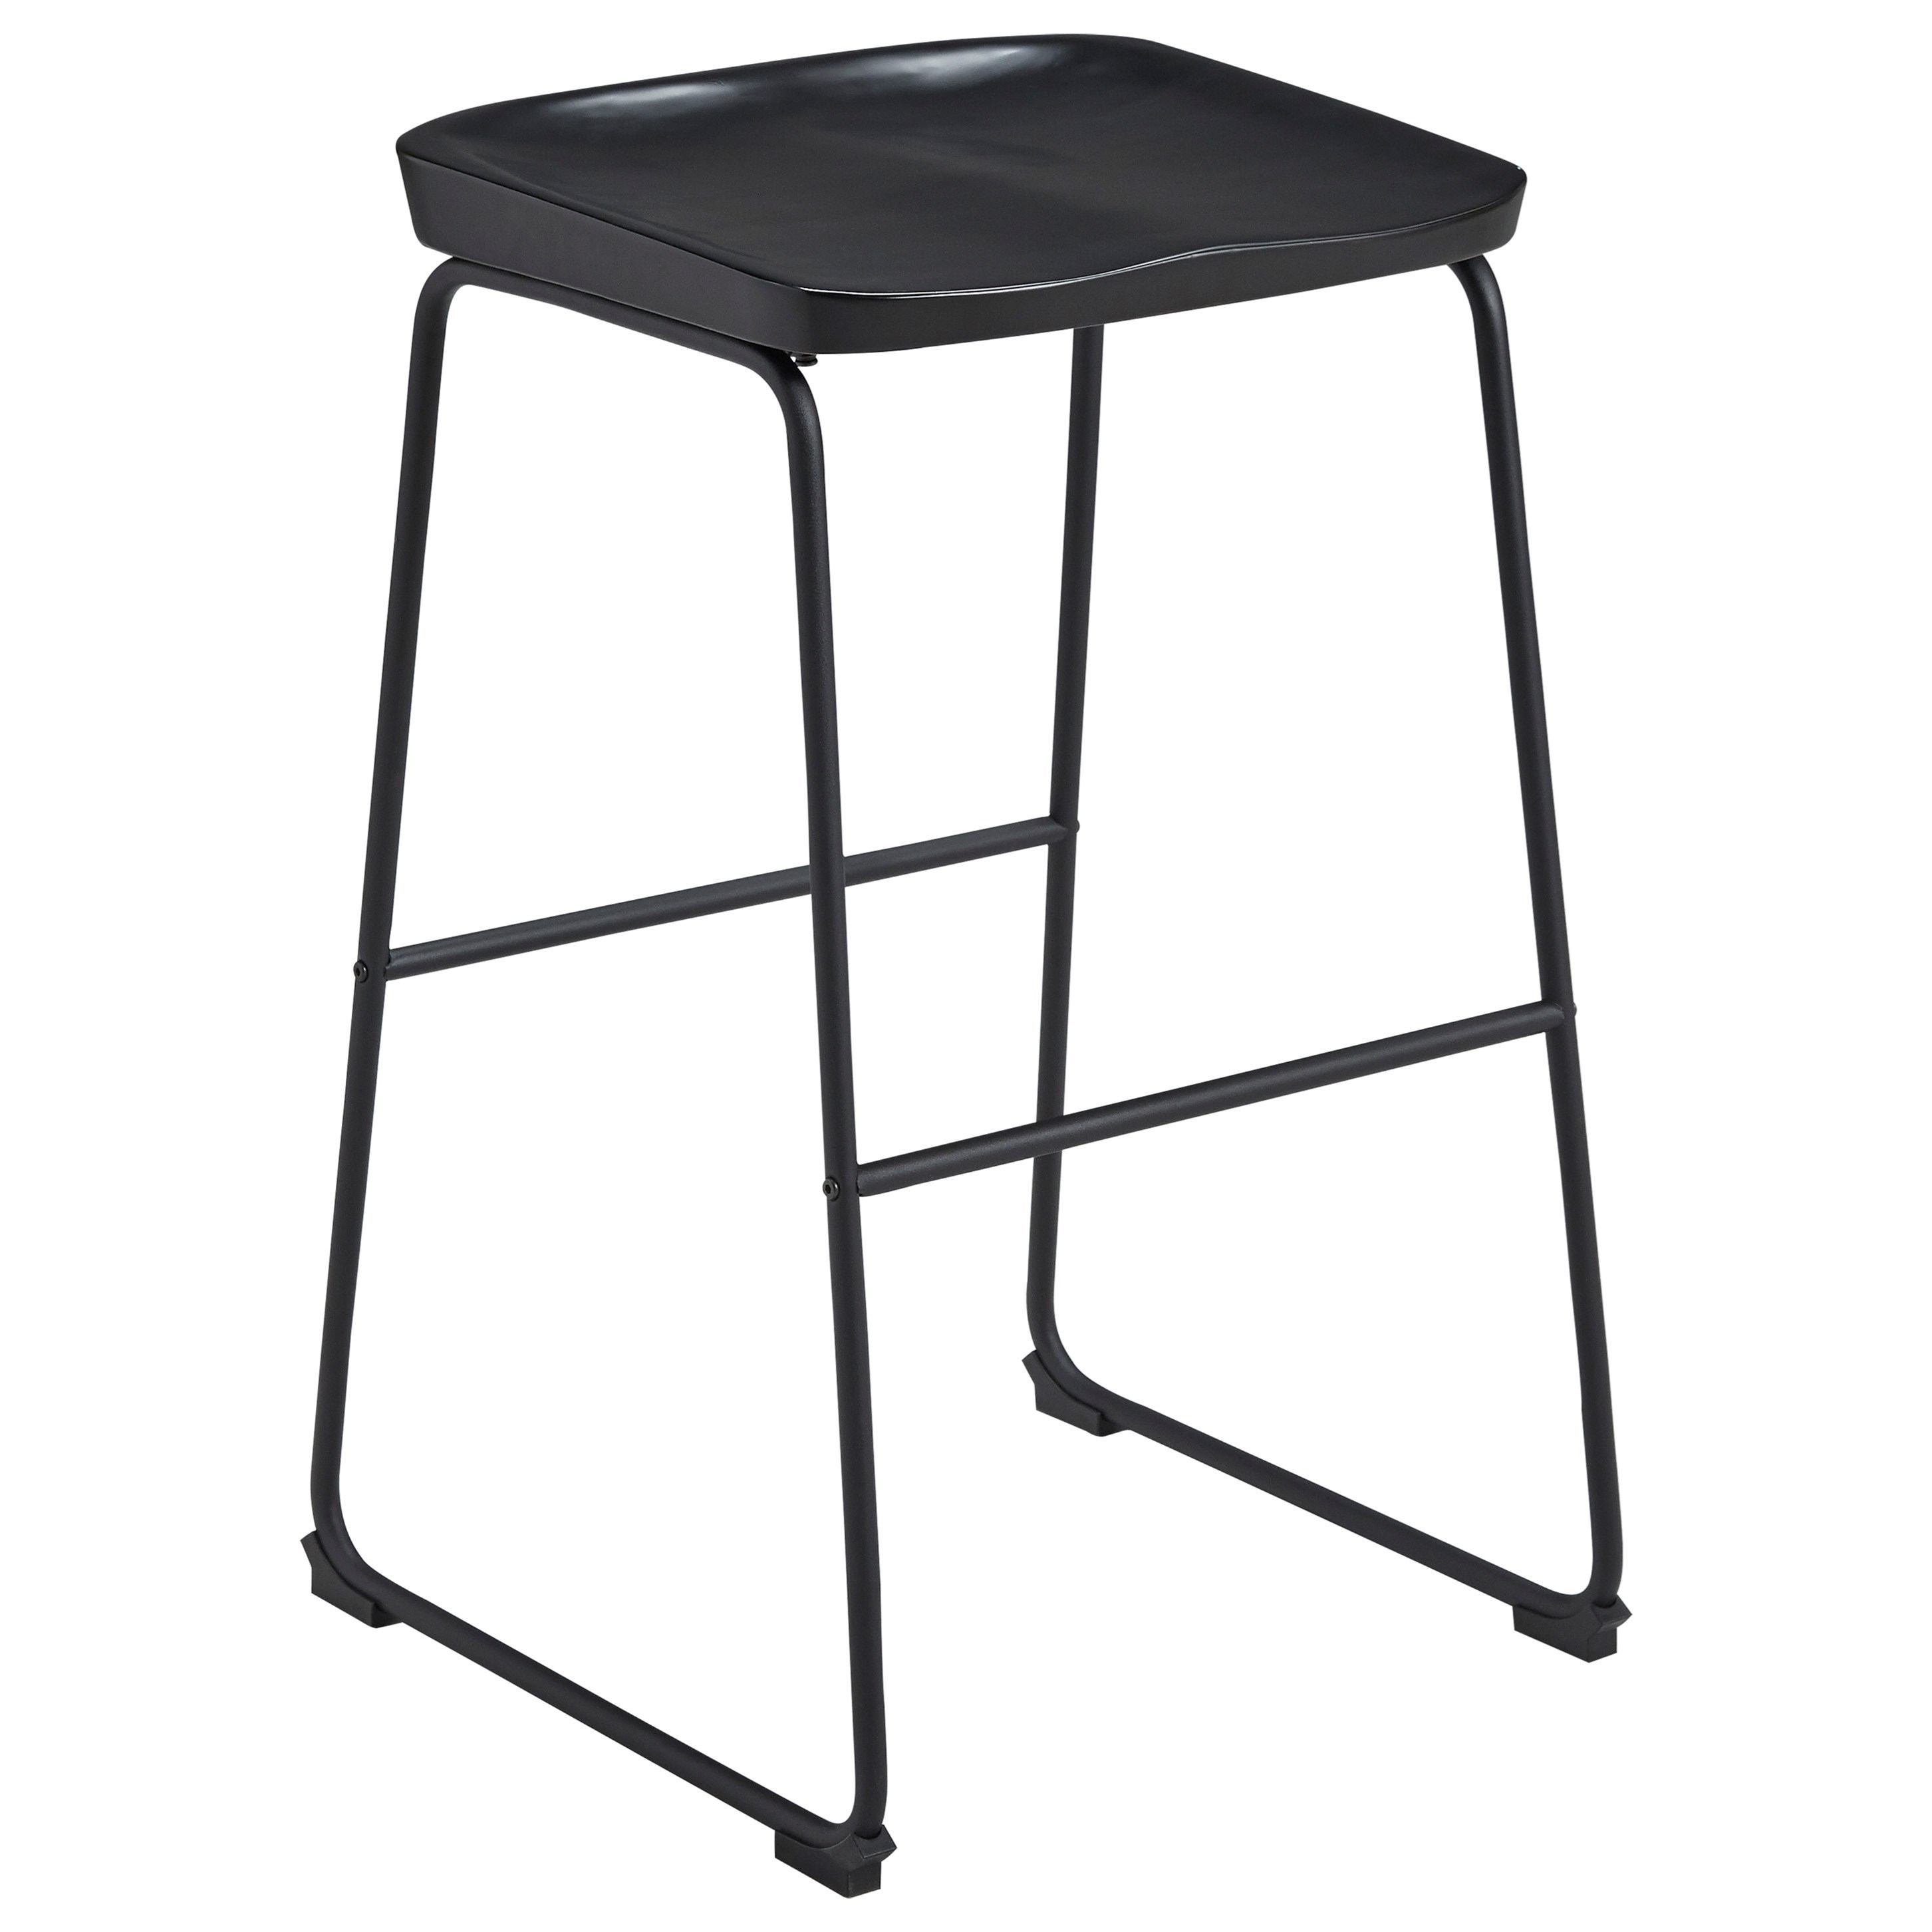 Showdell Tall Barstool by Signature Design by Ashley at HomeWorld Furniture